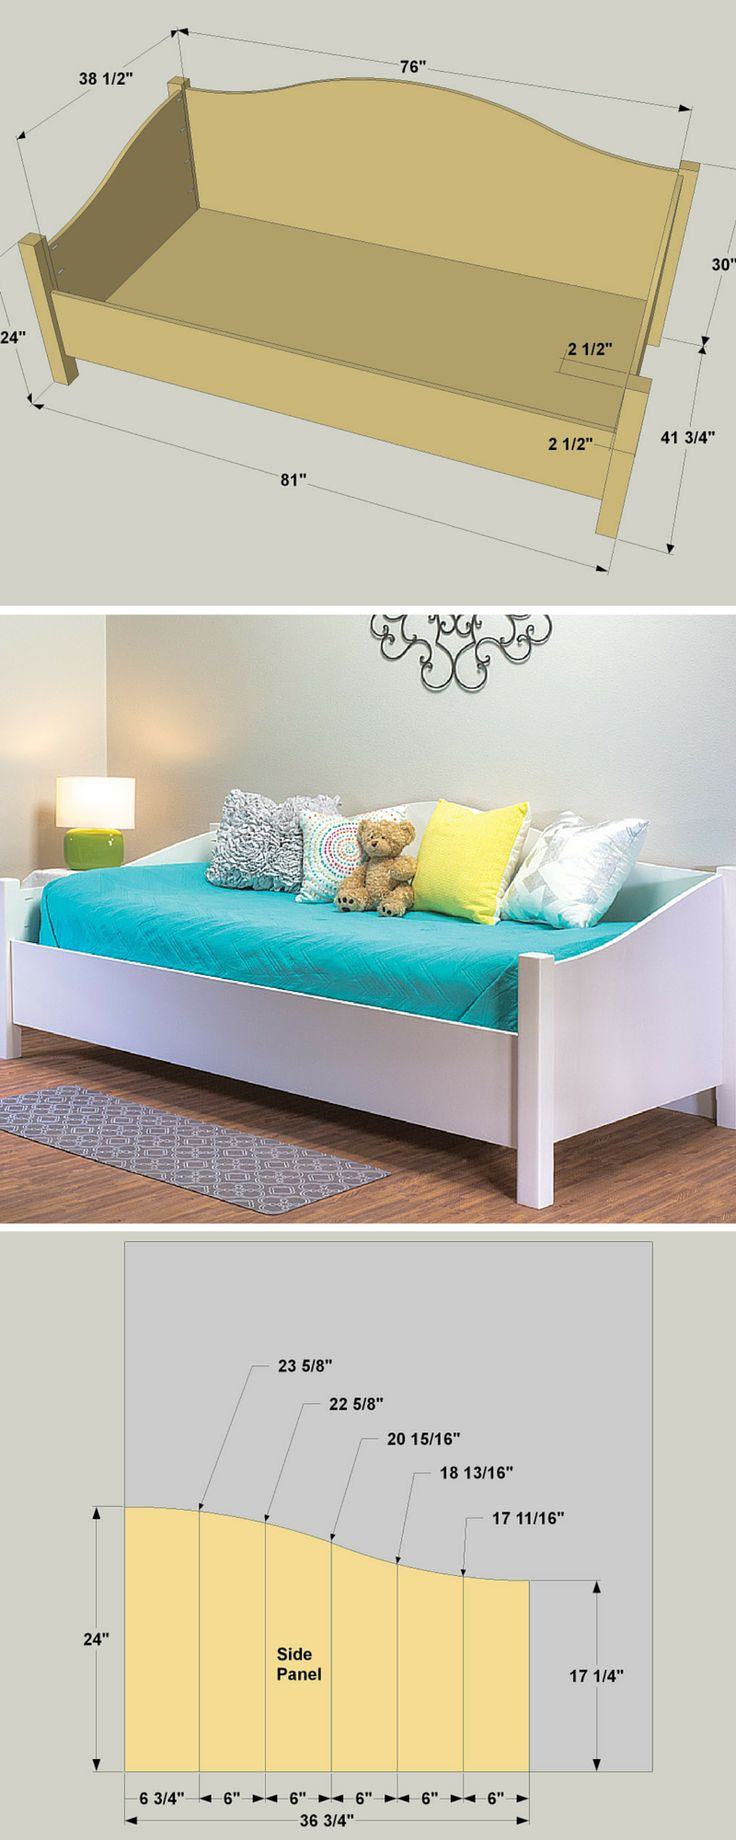 By day, this daybed provides a comfy place to sit. By night, or when needed for guests, it becomes a bed. Whichever purpose it's serving, this daybed looks great doing so. The curves add style, and the look can be masculine, feminine, or neutral, depending on the finish and bedding you choose. Get the free DIY plans at buildsomething.com